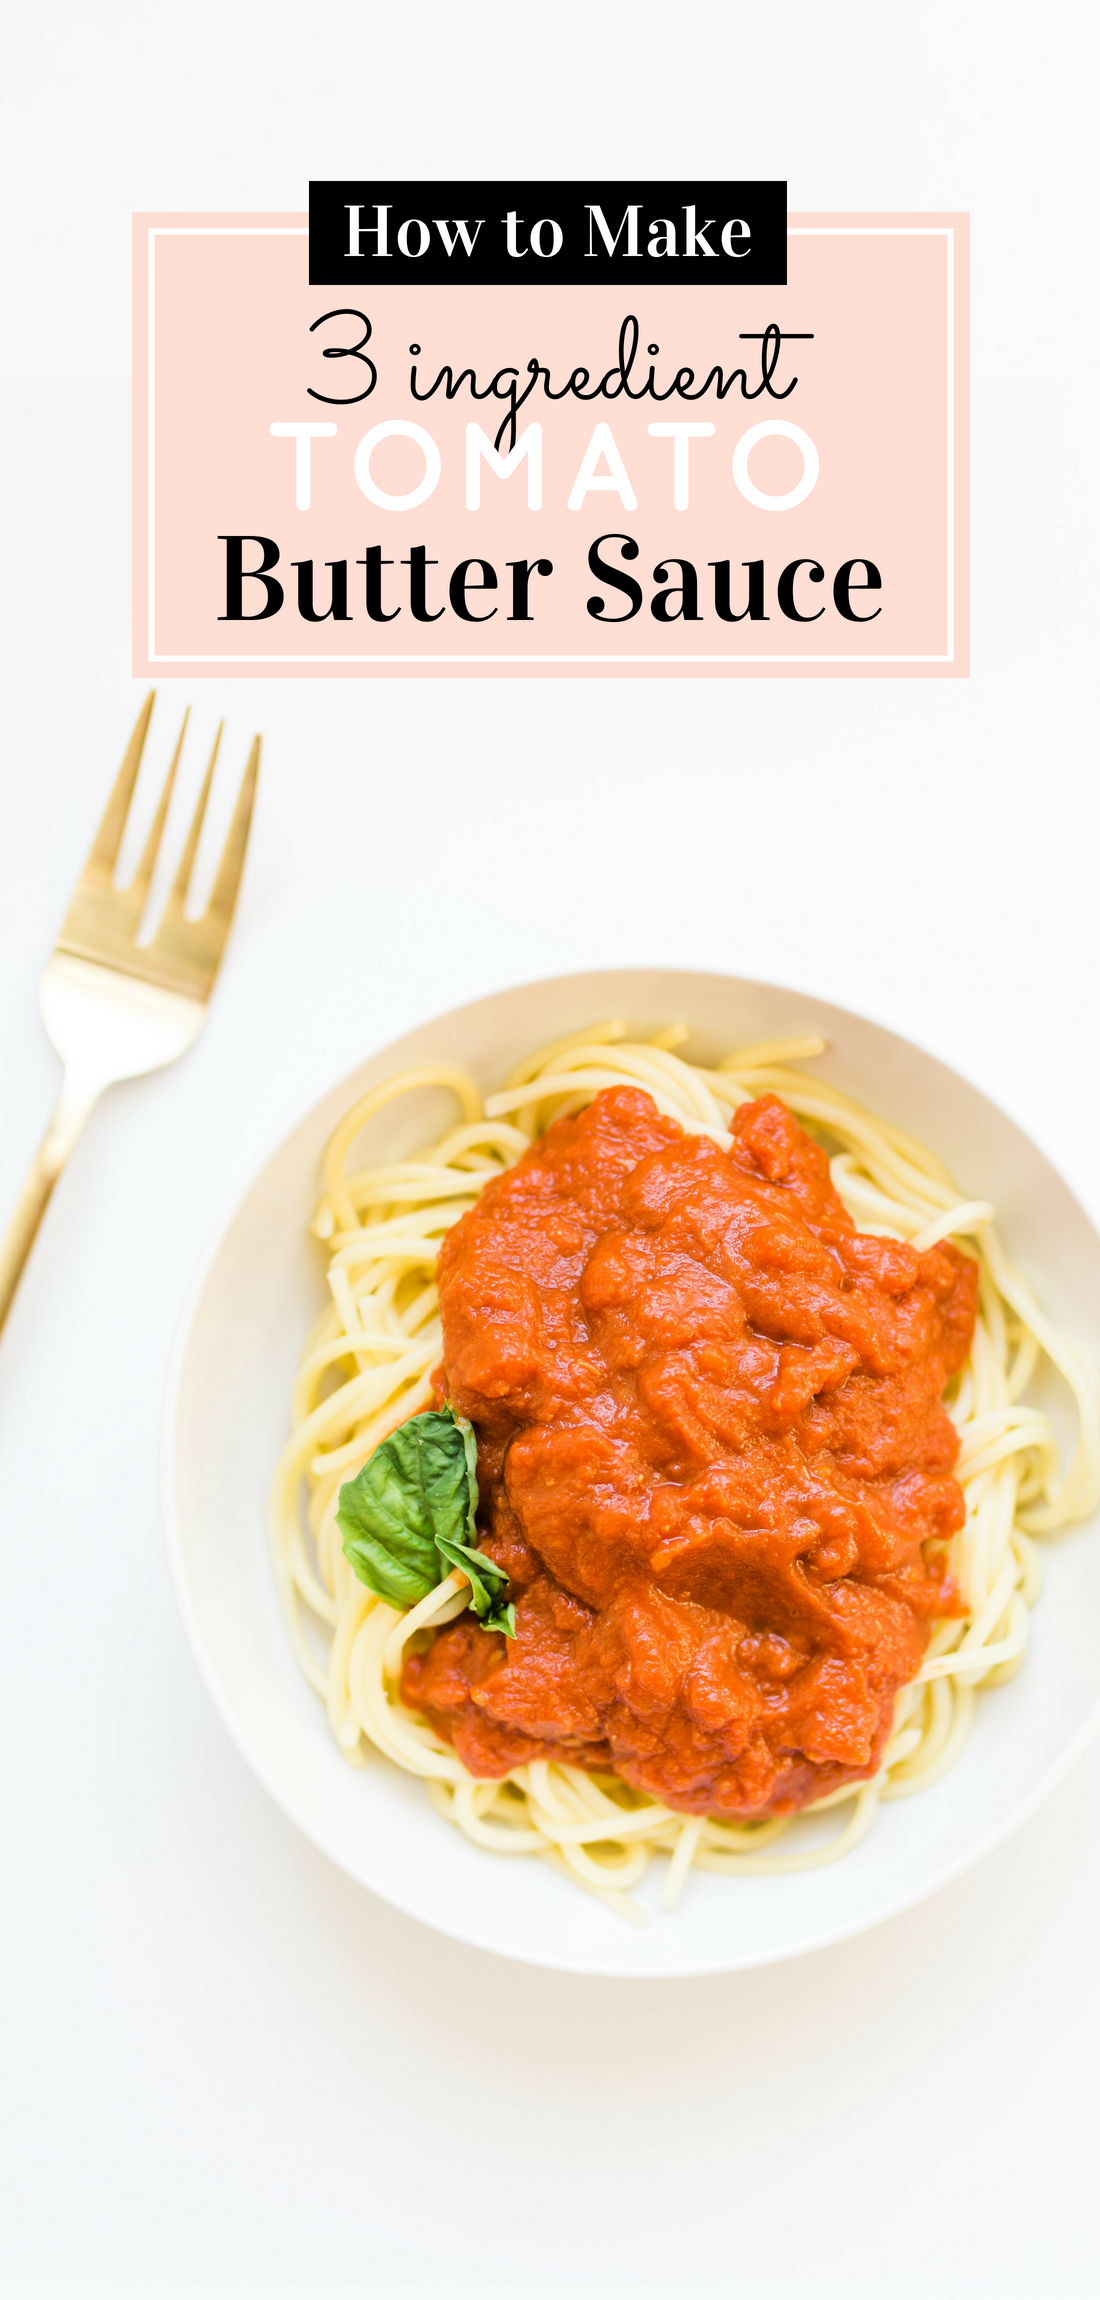 This delicious 3-ingredient tomato butter sauce, the one chefs and food bloggers alike adore, is unbelievably simple to make, produces a velvety rich sauce, and will become a staple in your kitchen. Click through for the recipe. #pastasauce #tomatosauce #sanmarzano #italiancooking #dinner #dinnerrecipe #easydinner #easytomatosauce #easypastasauce #recipe | glitterinc.com | @glitterinc